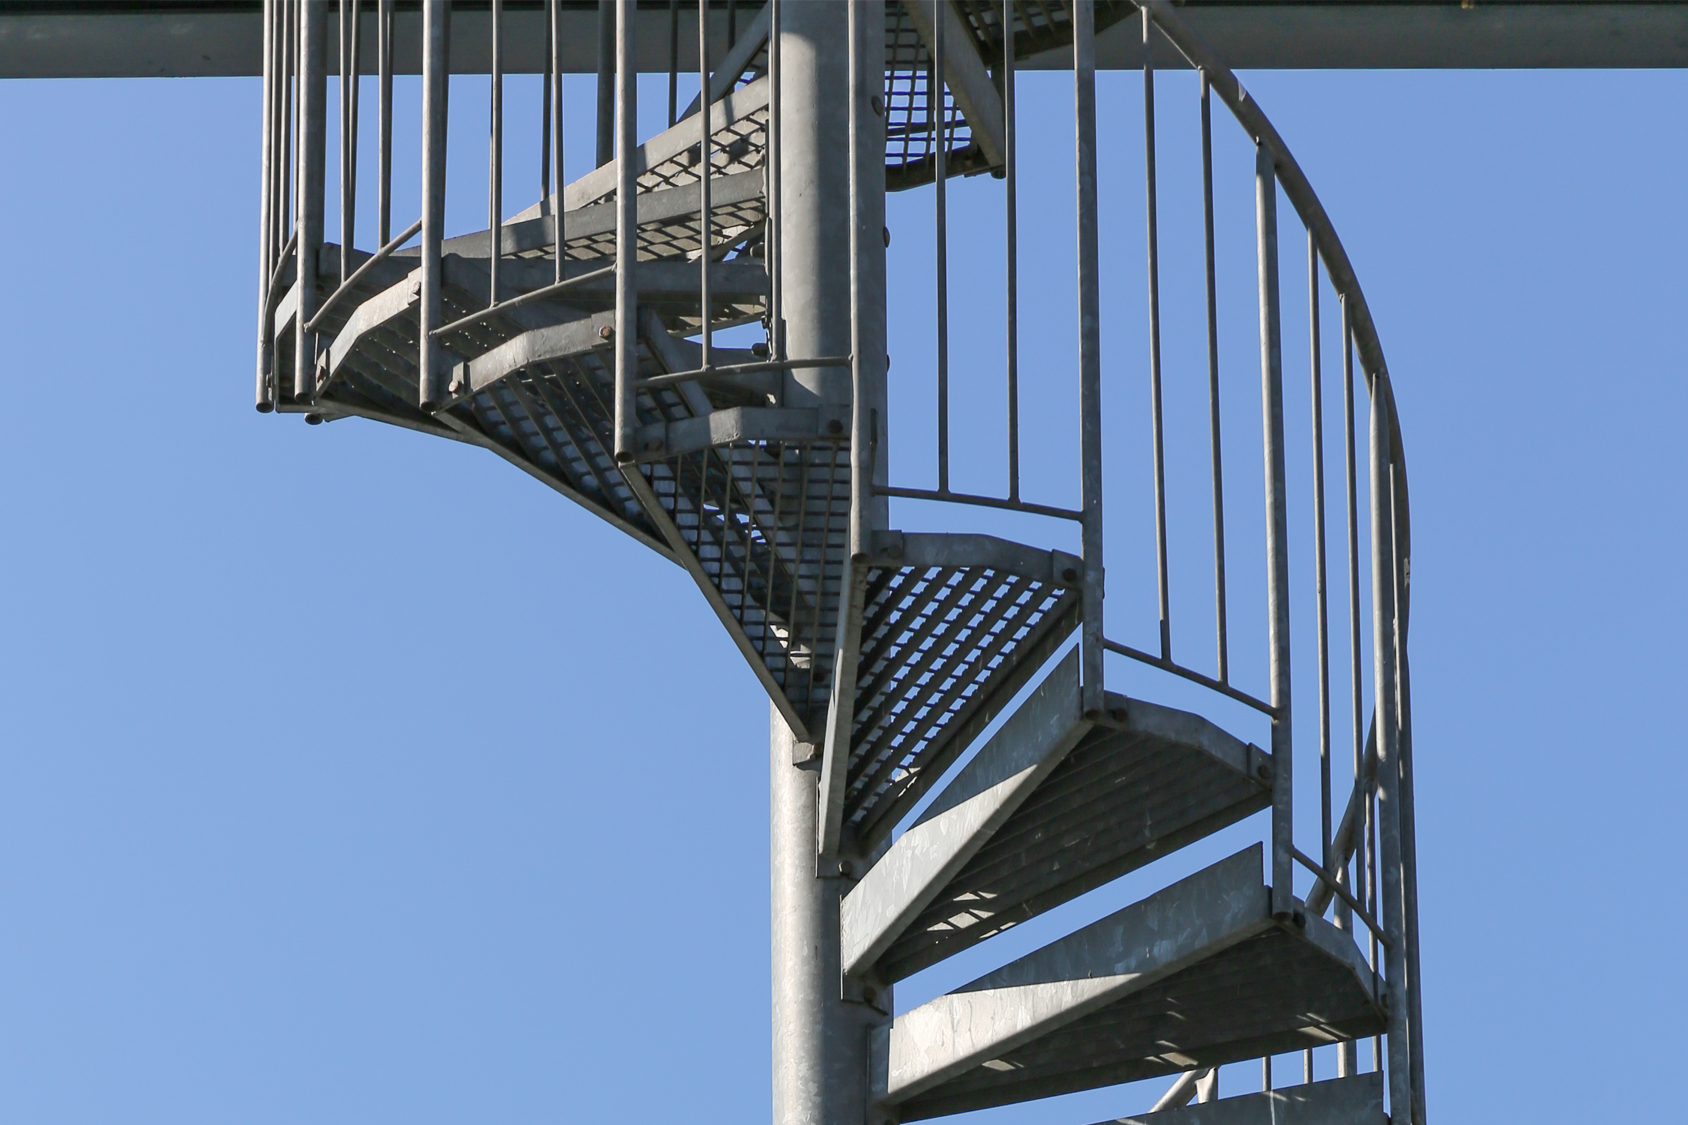 Steel circular staircase bright blue sky backdrop